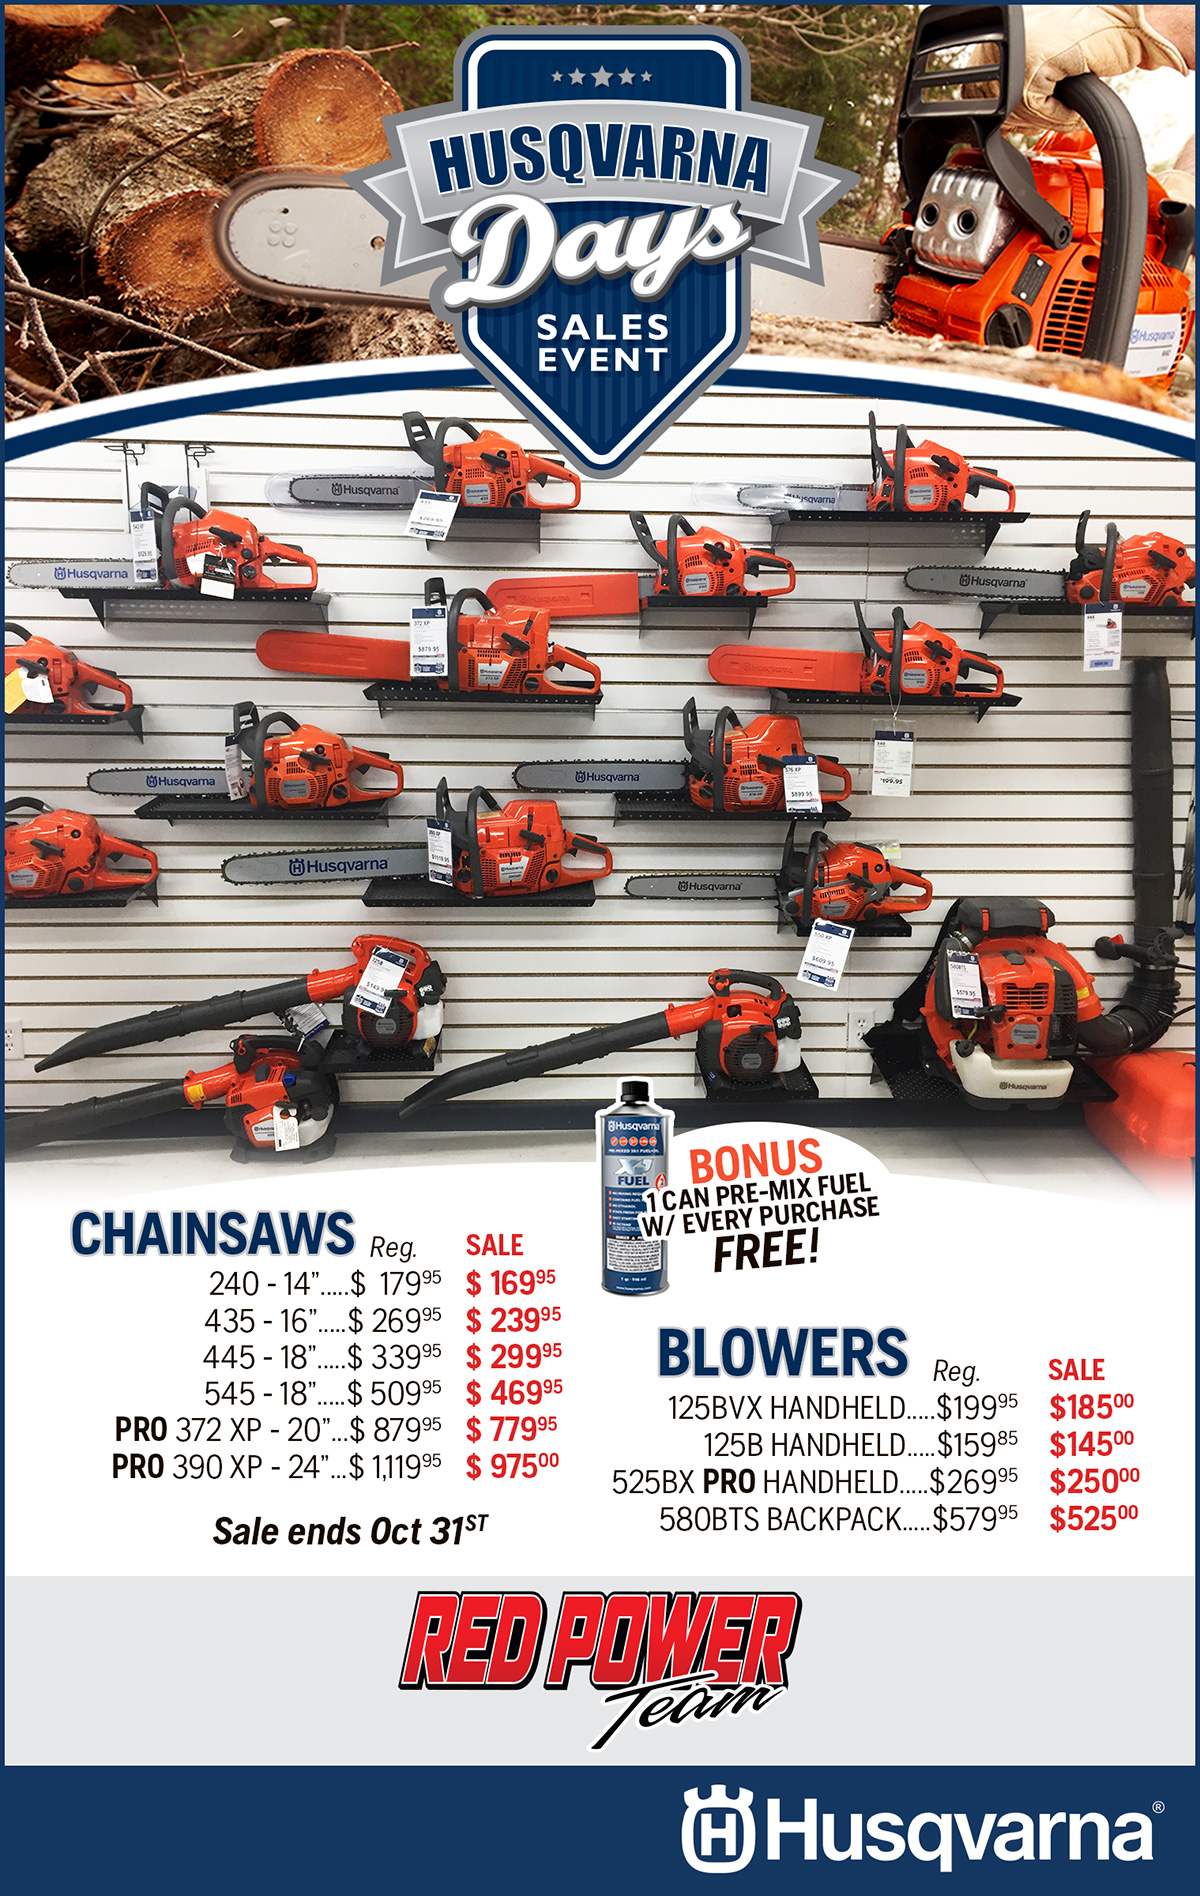 Husqvarna Days Sales Event